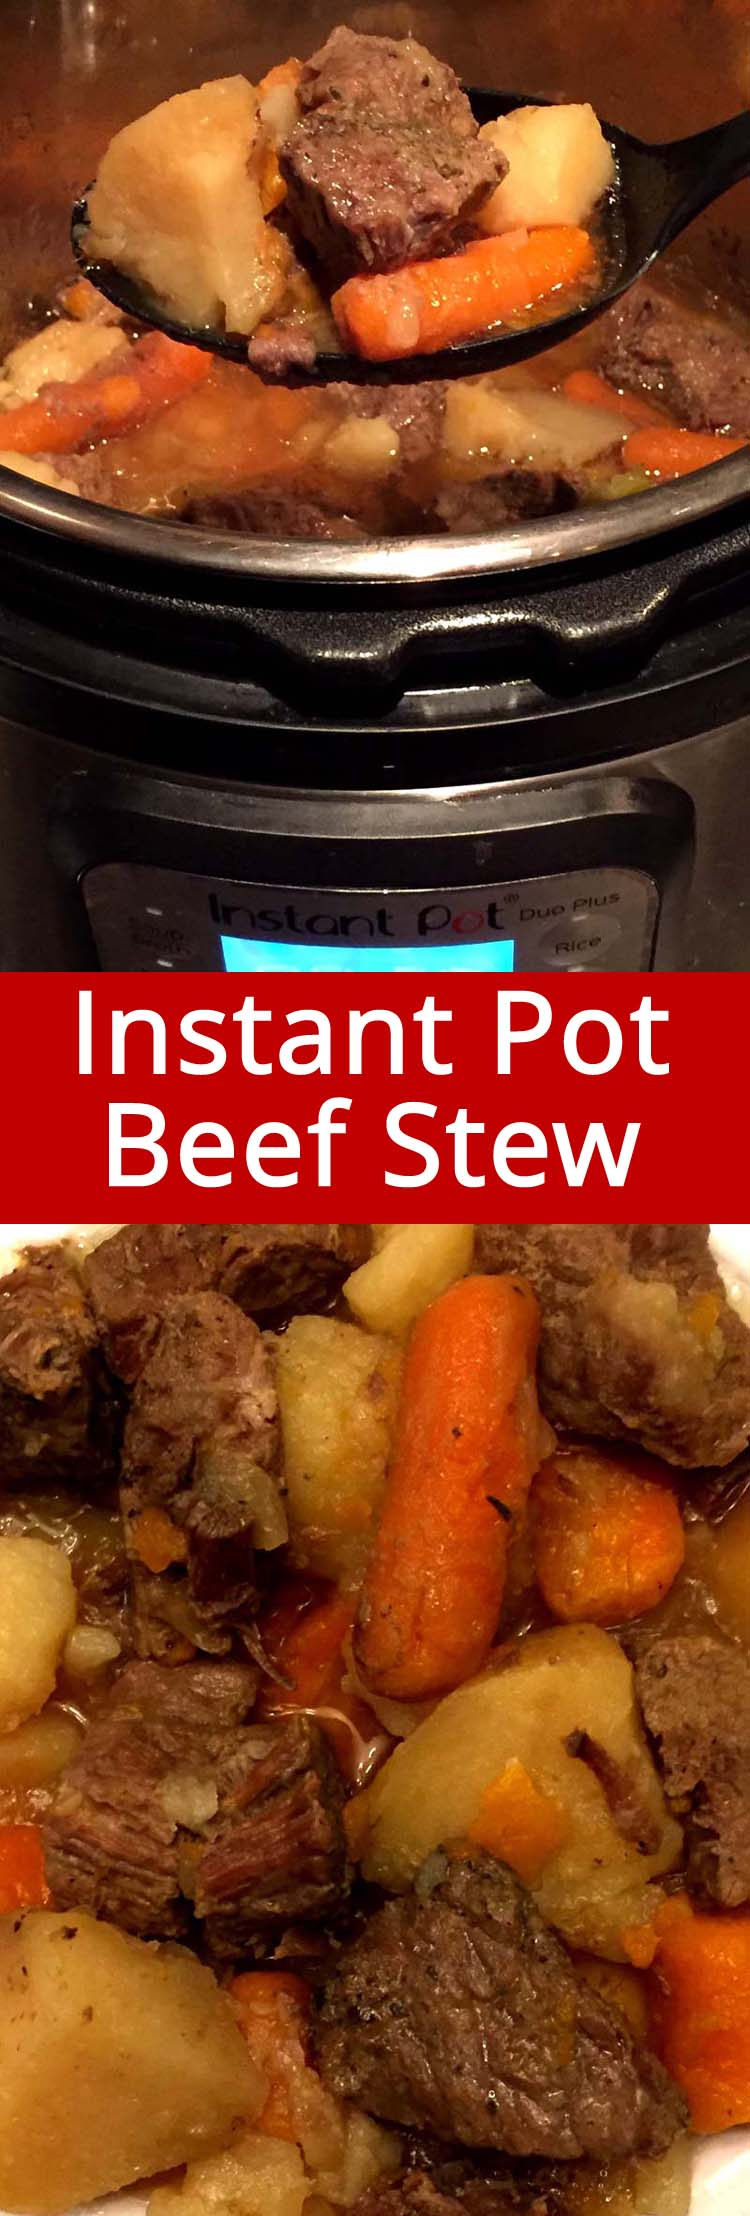 This Instant Pot beef stew is amazing! PINNING FOR LATER!! Just dump the ingredients in the Instant Pot and it will cook you a delicious dinner! This is the only beef stew recipe you'll ever need!